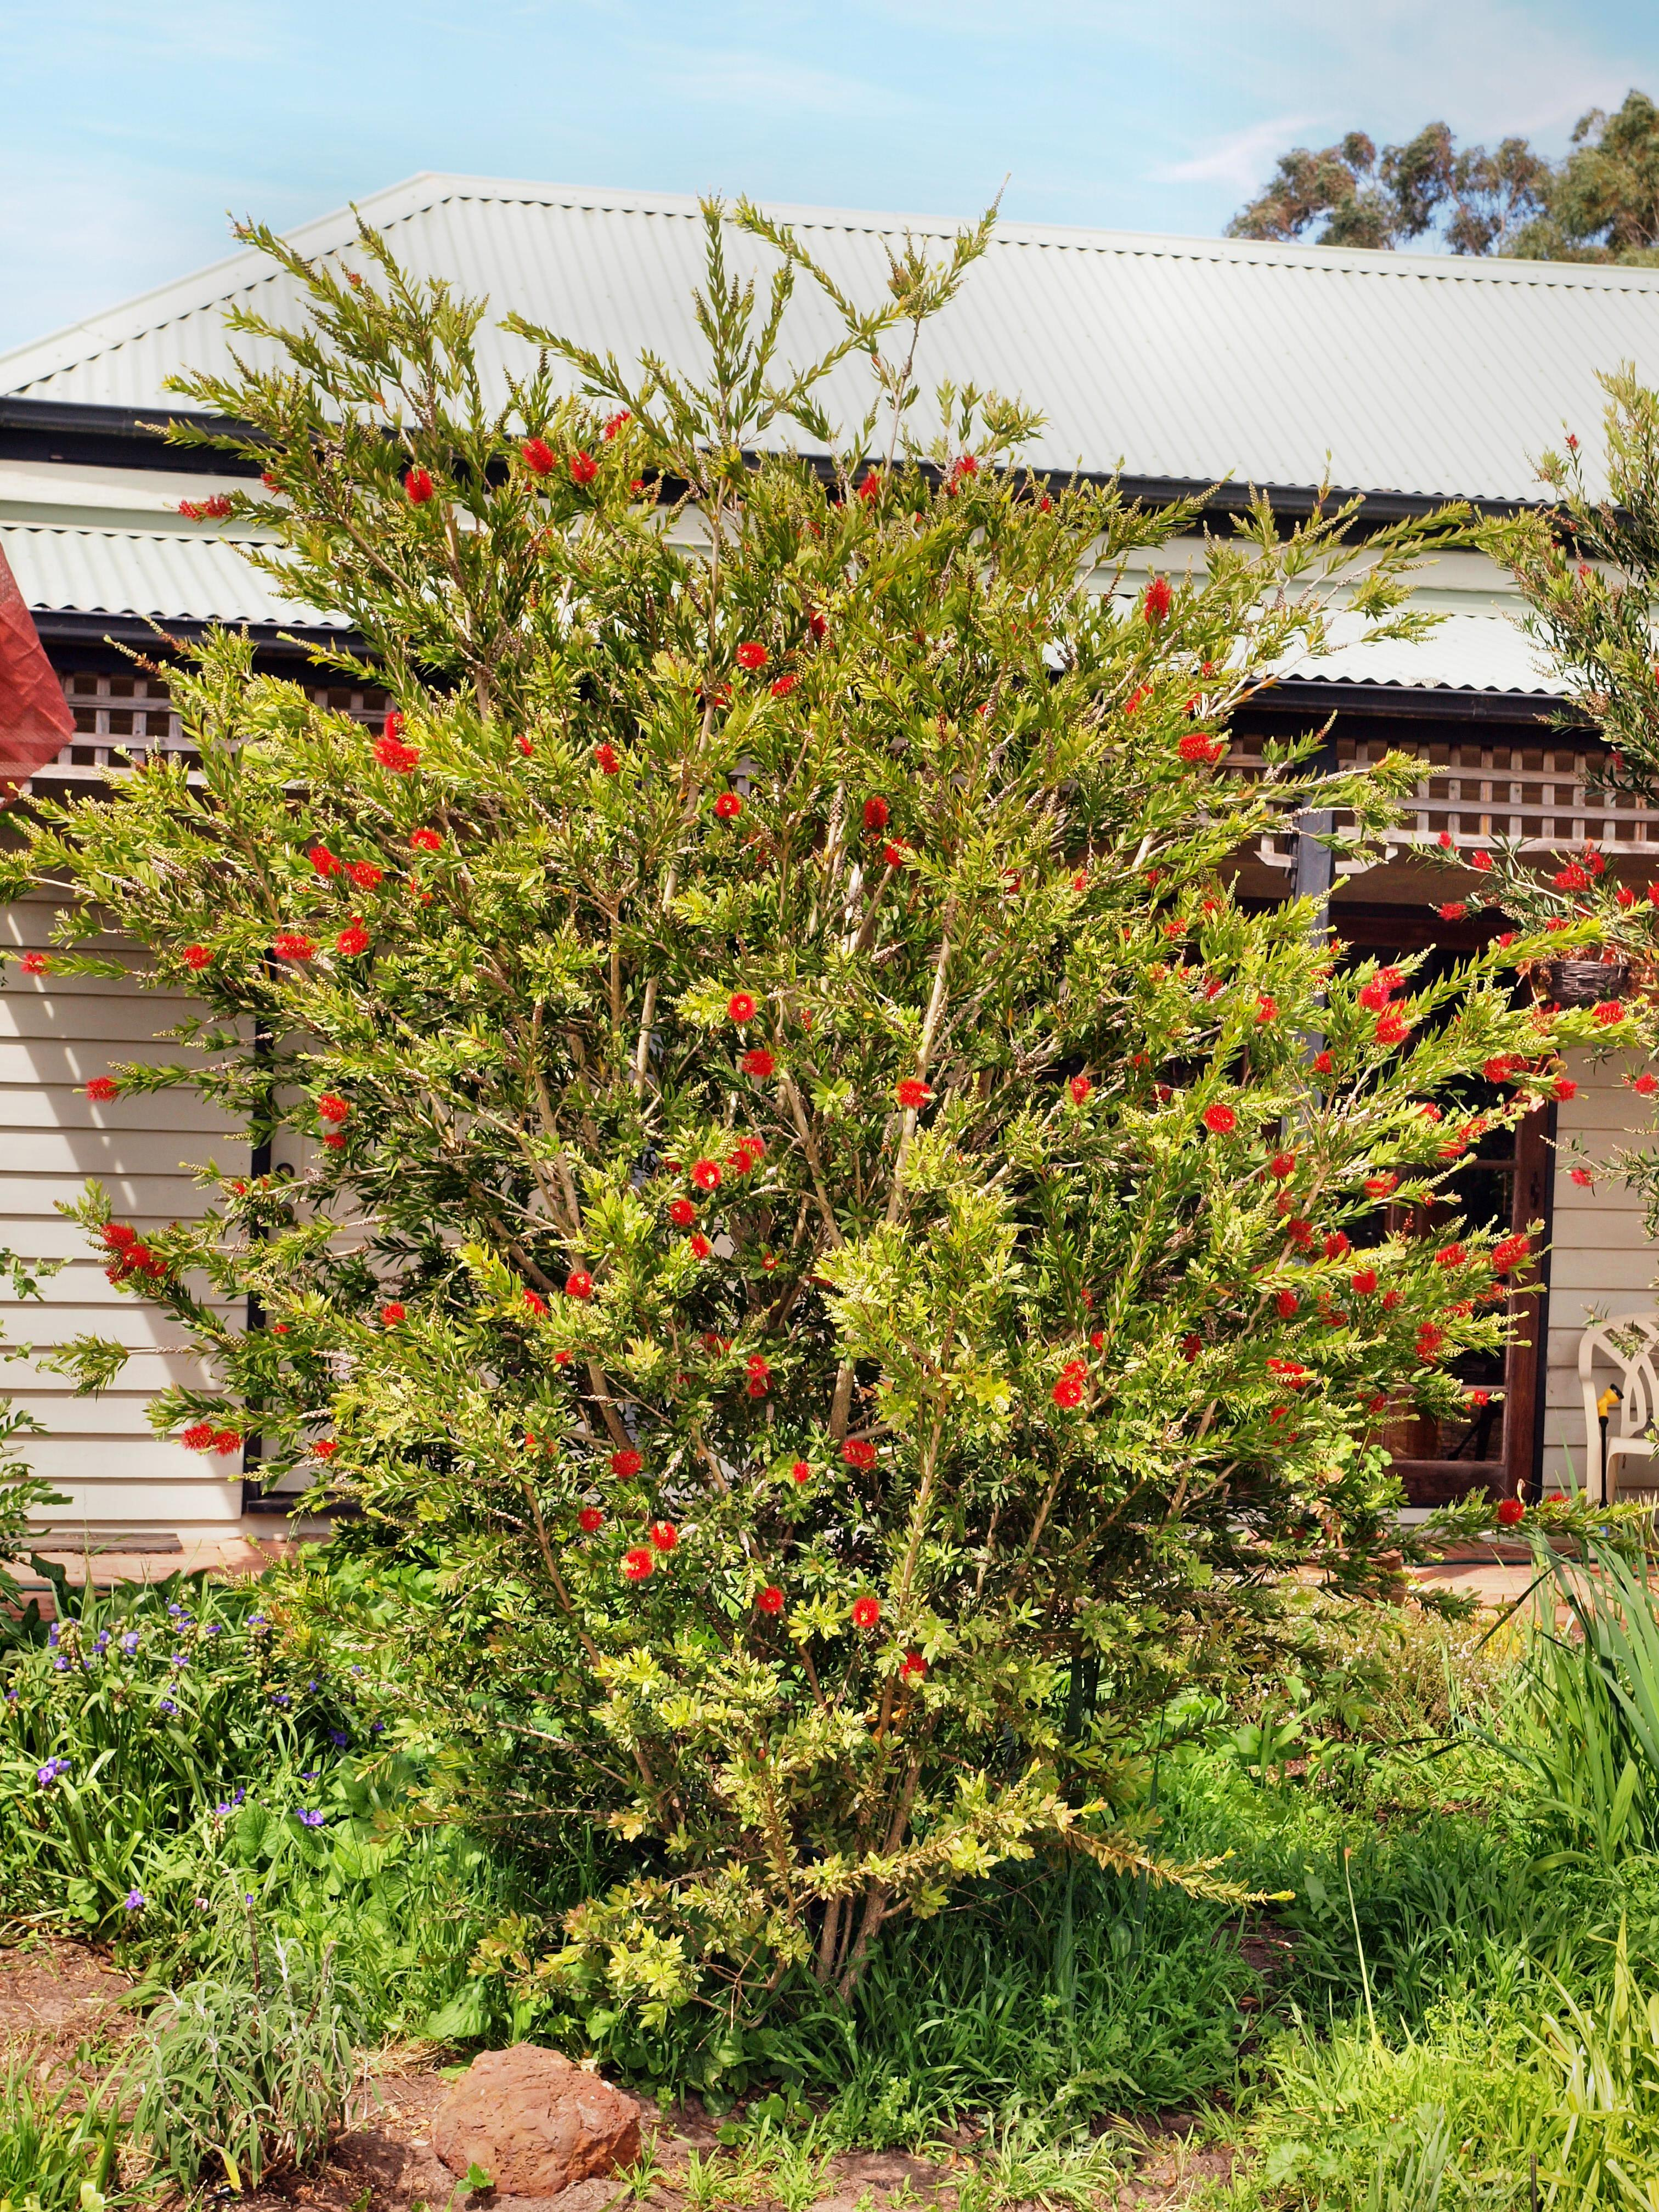 This should be Callistemon-4.jpeg.  Is it missing?